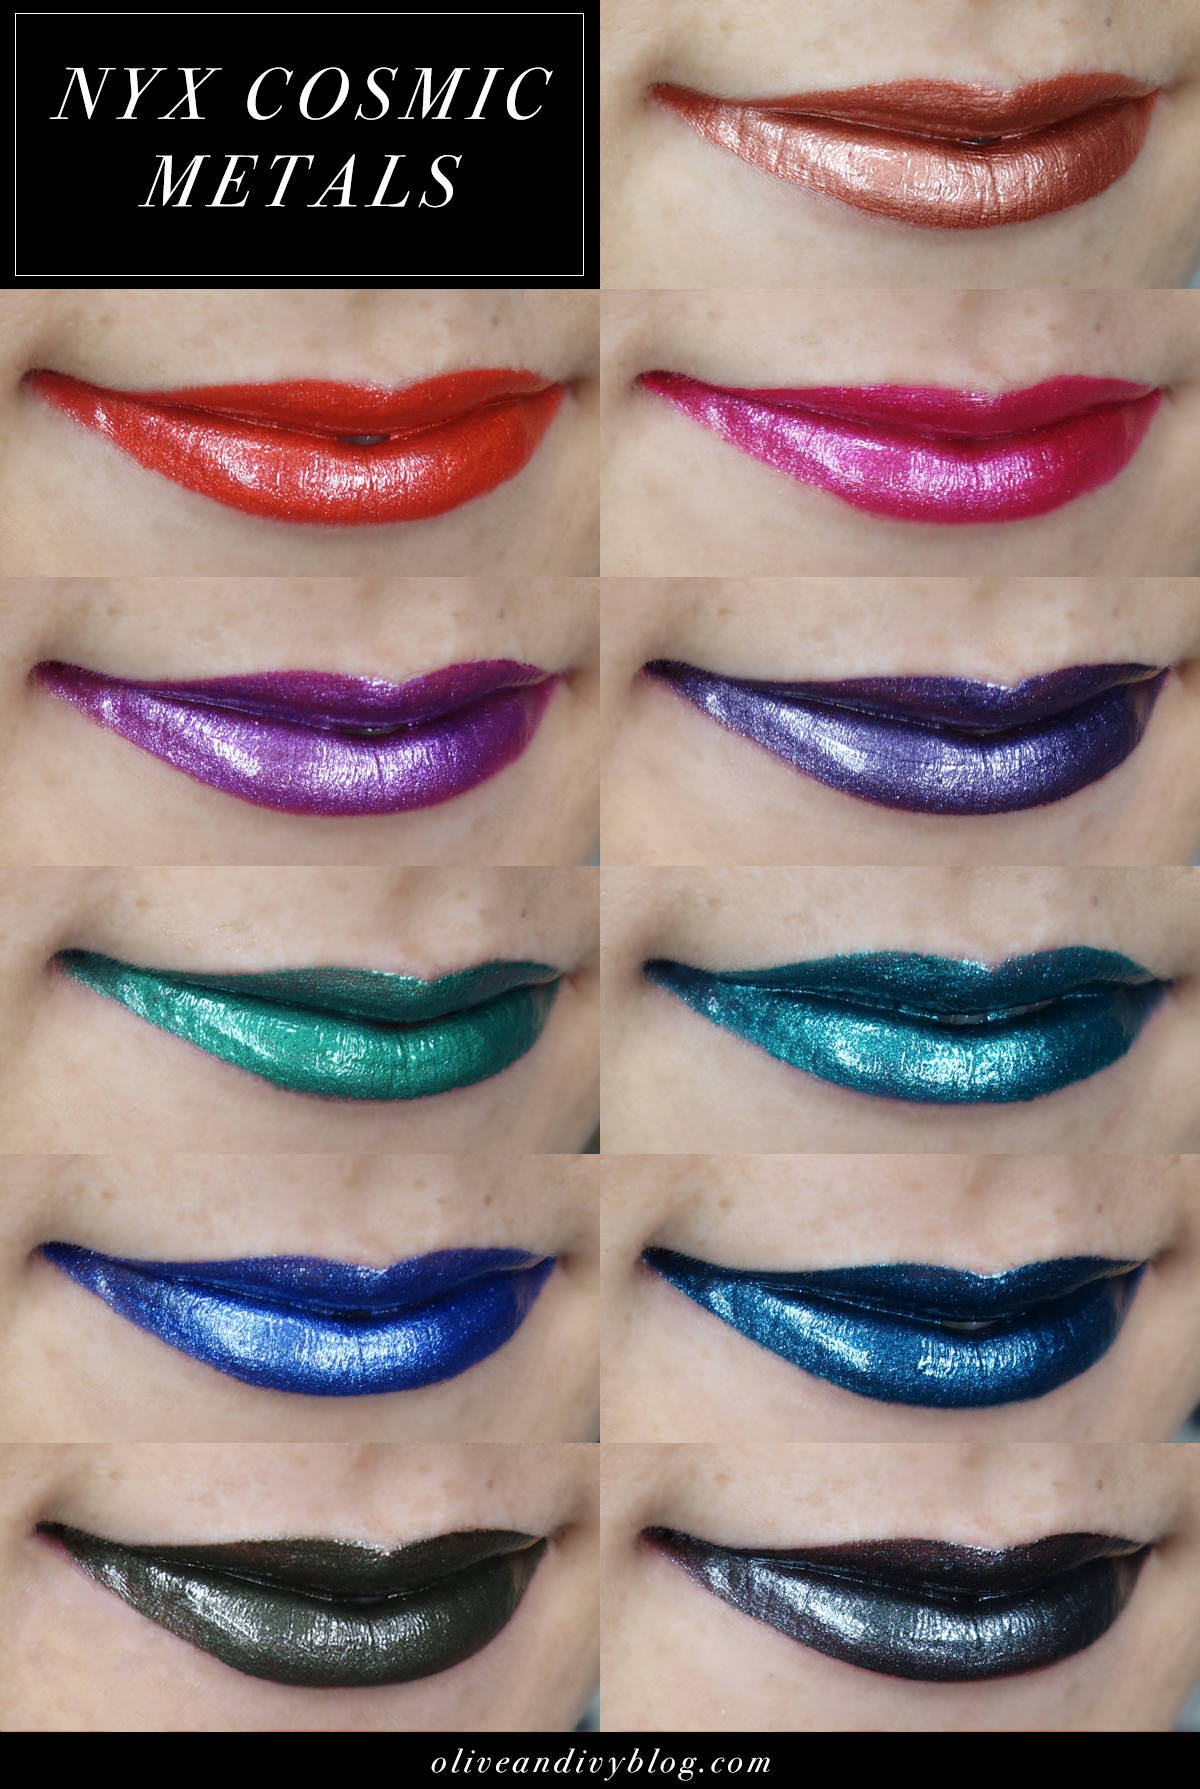 Nyx Cosmic Metal Lip Cream Swatches One Just May Be A Kymajesty Kylie Kit Dupe Oliveandivyblog